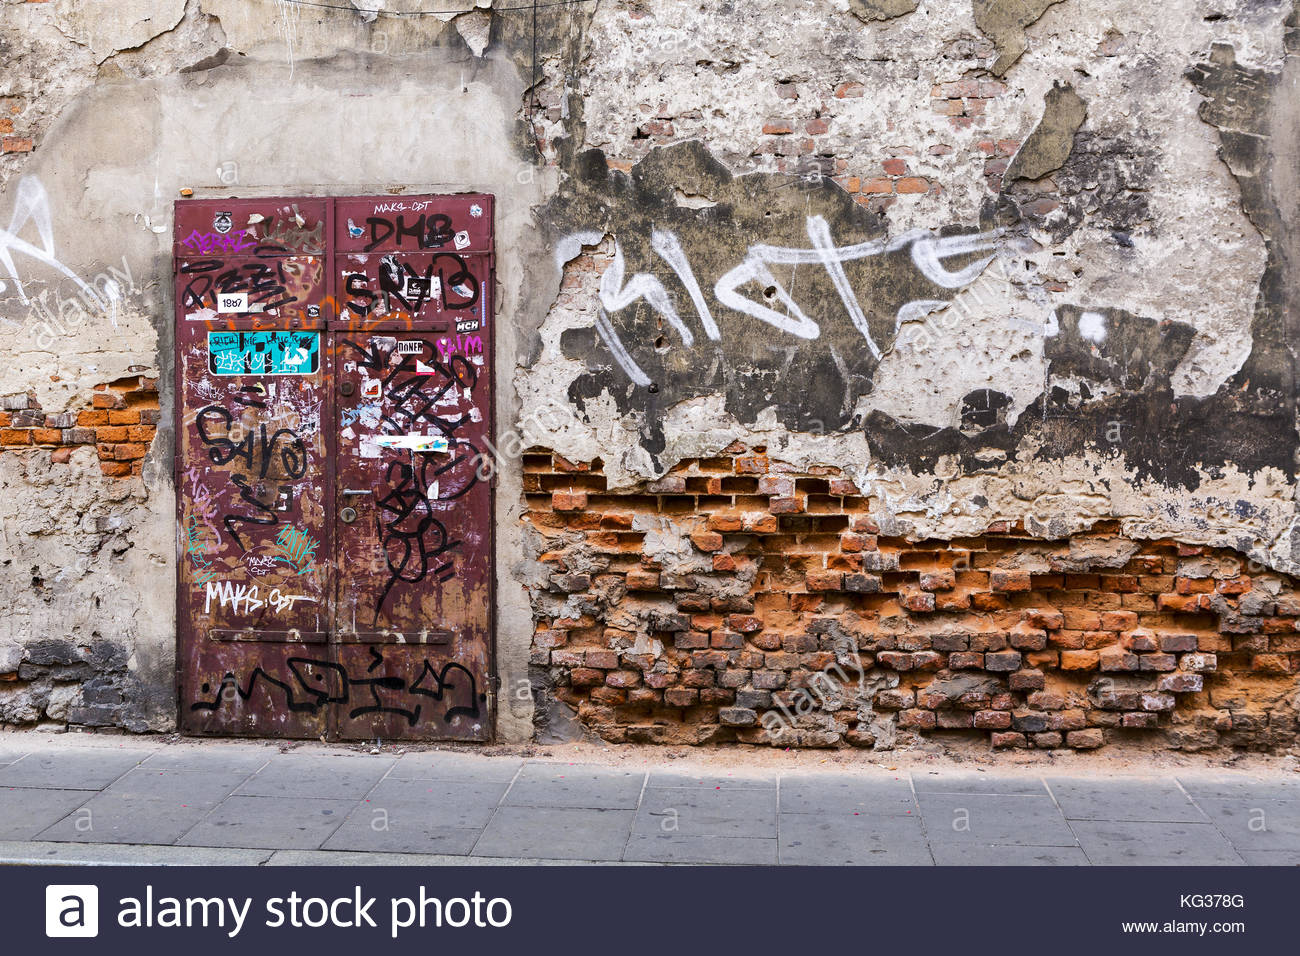 Poster and graffiti covered door in the wall of a building in Krakow which has been erroded by water splashed by - Stock Image